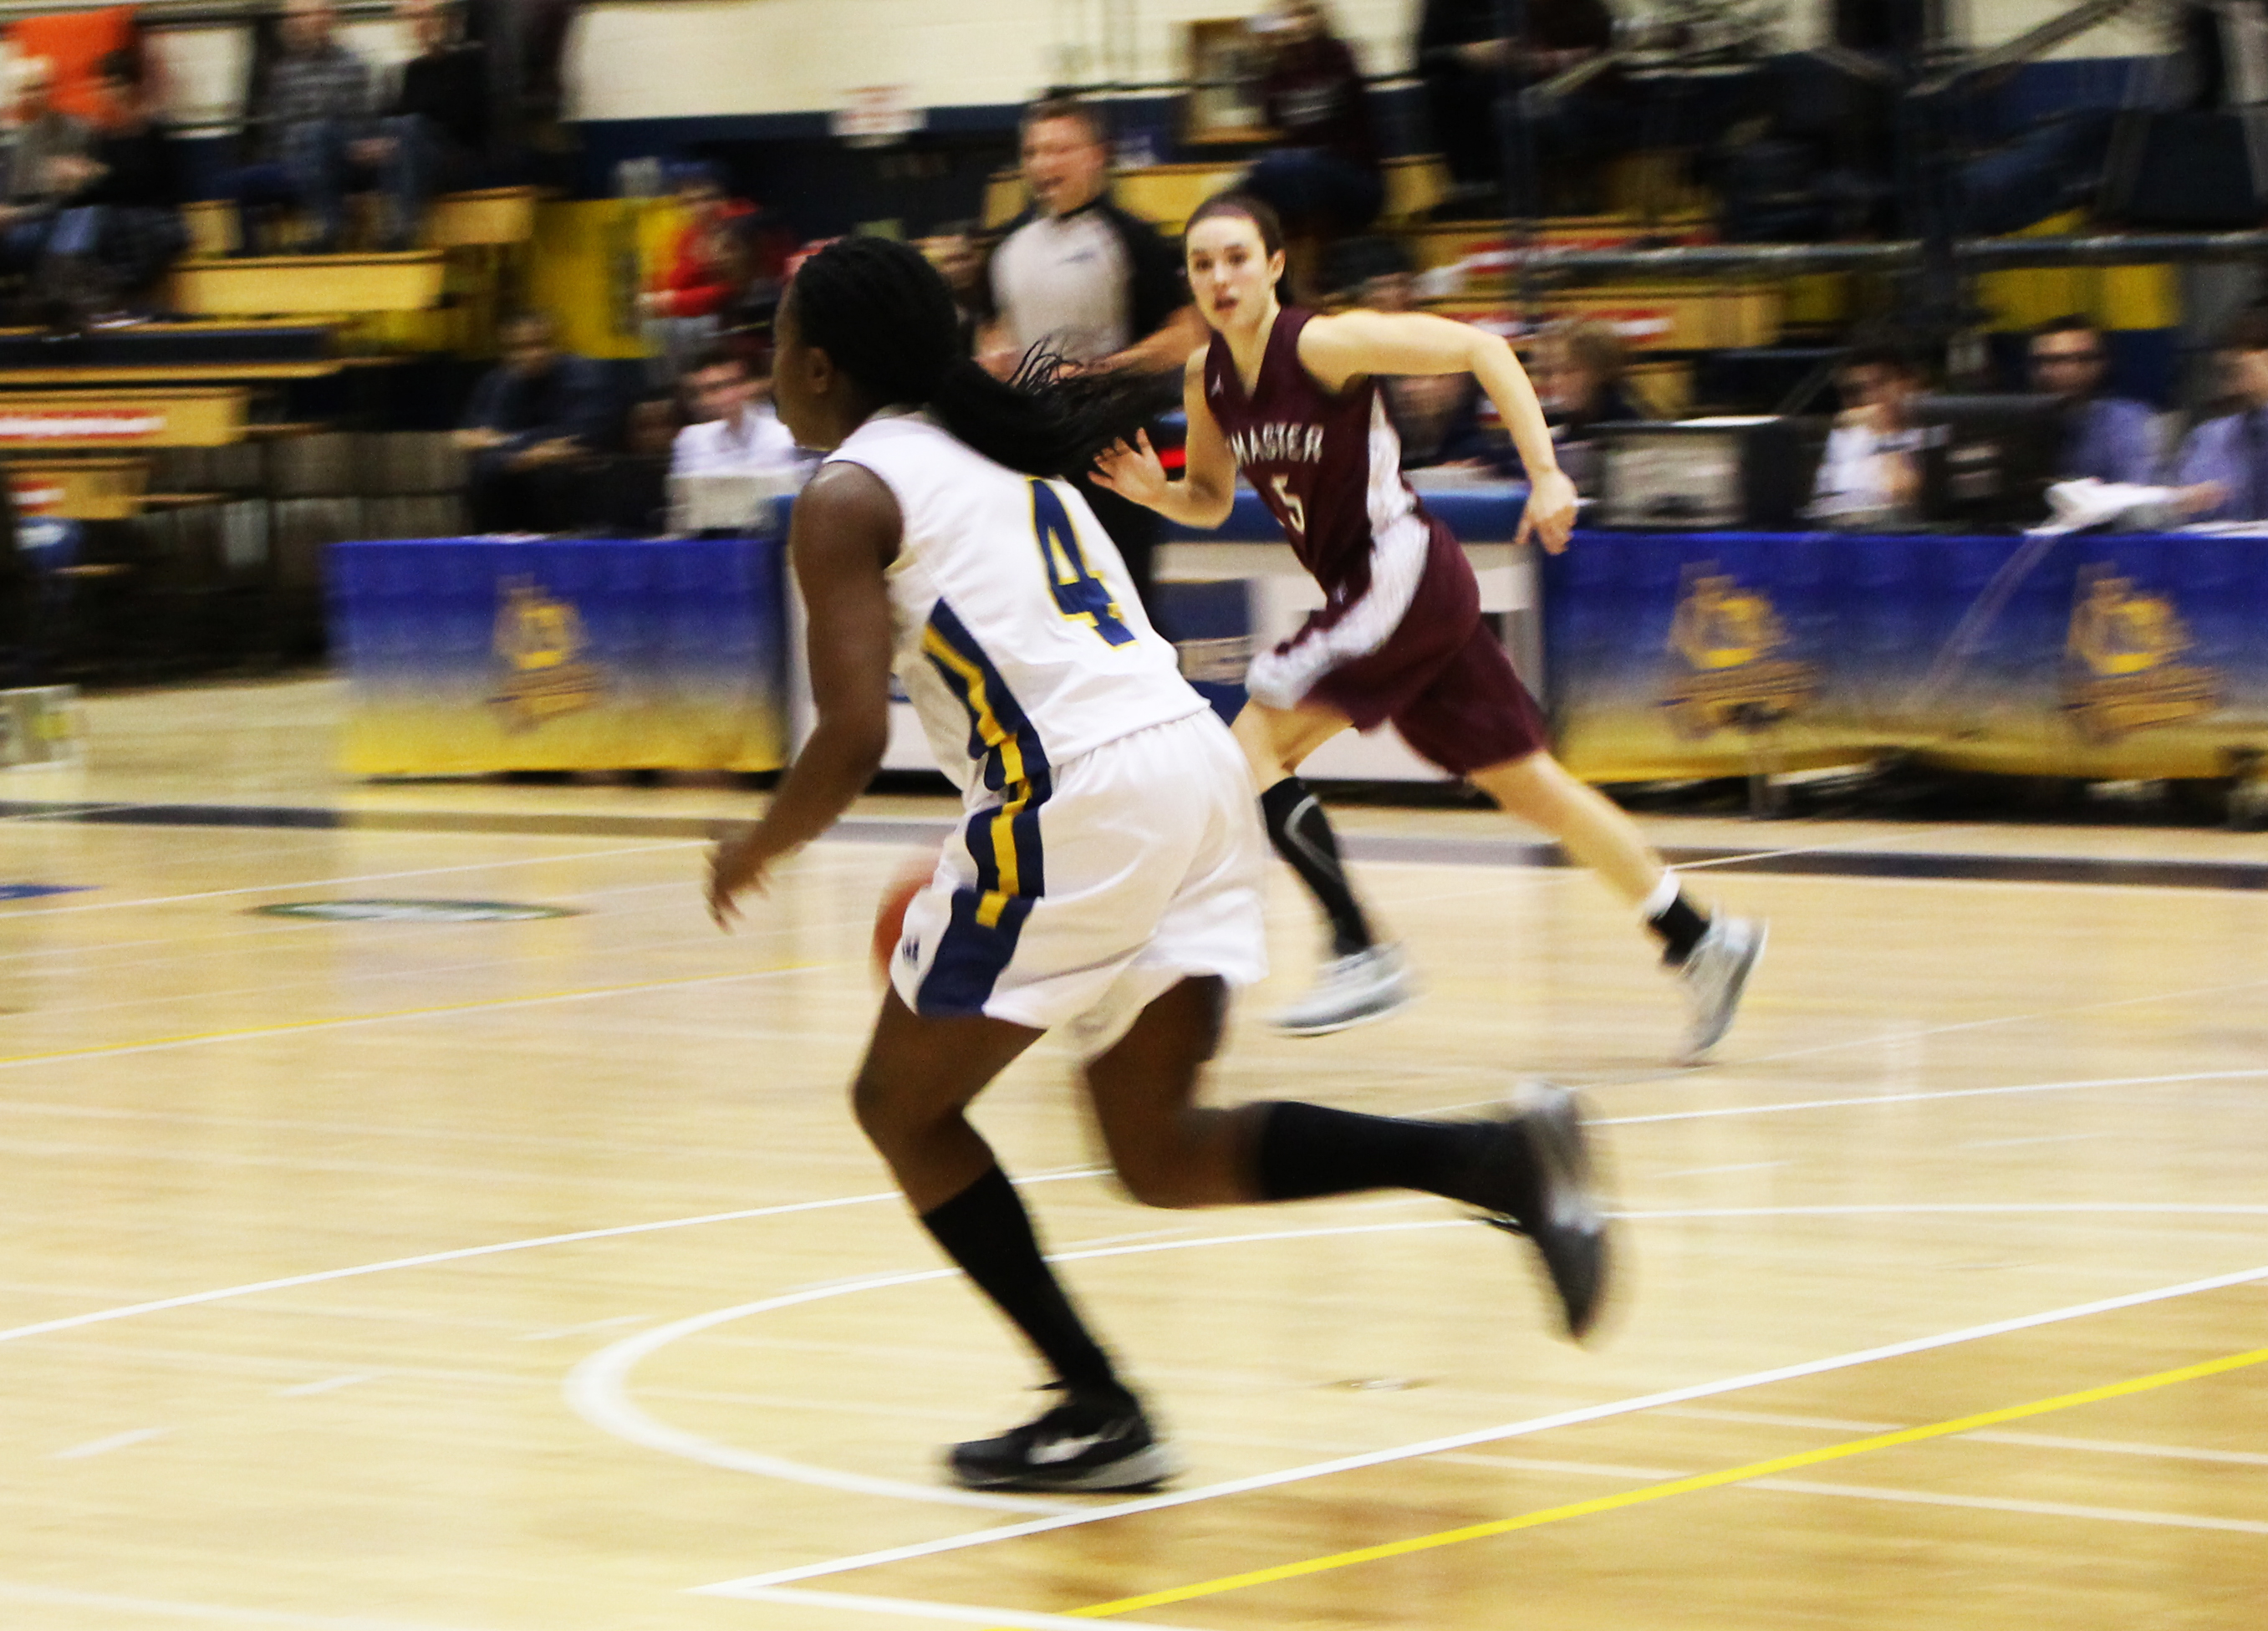 The women Voyageurs basketball team faces the McMaster Marauders on January 16. Photo by Kayla Perry